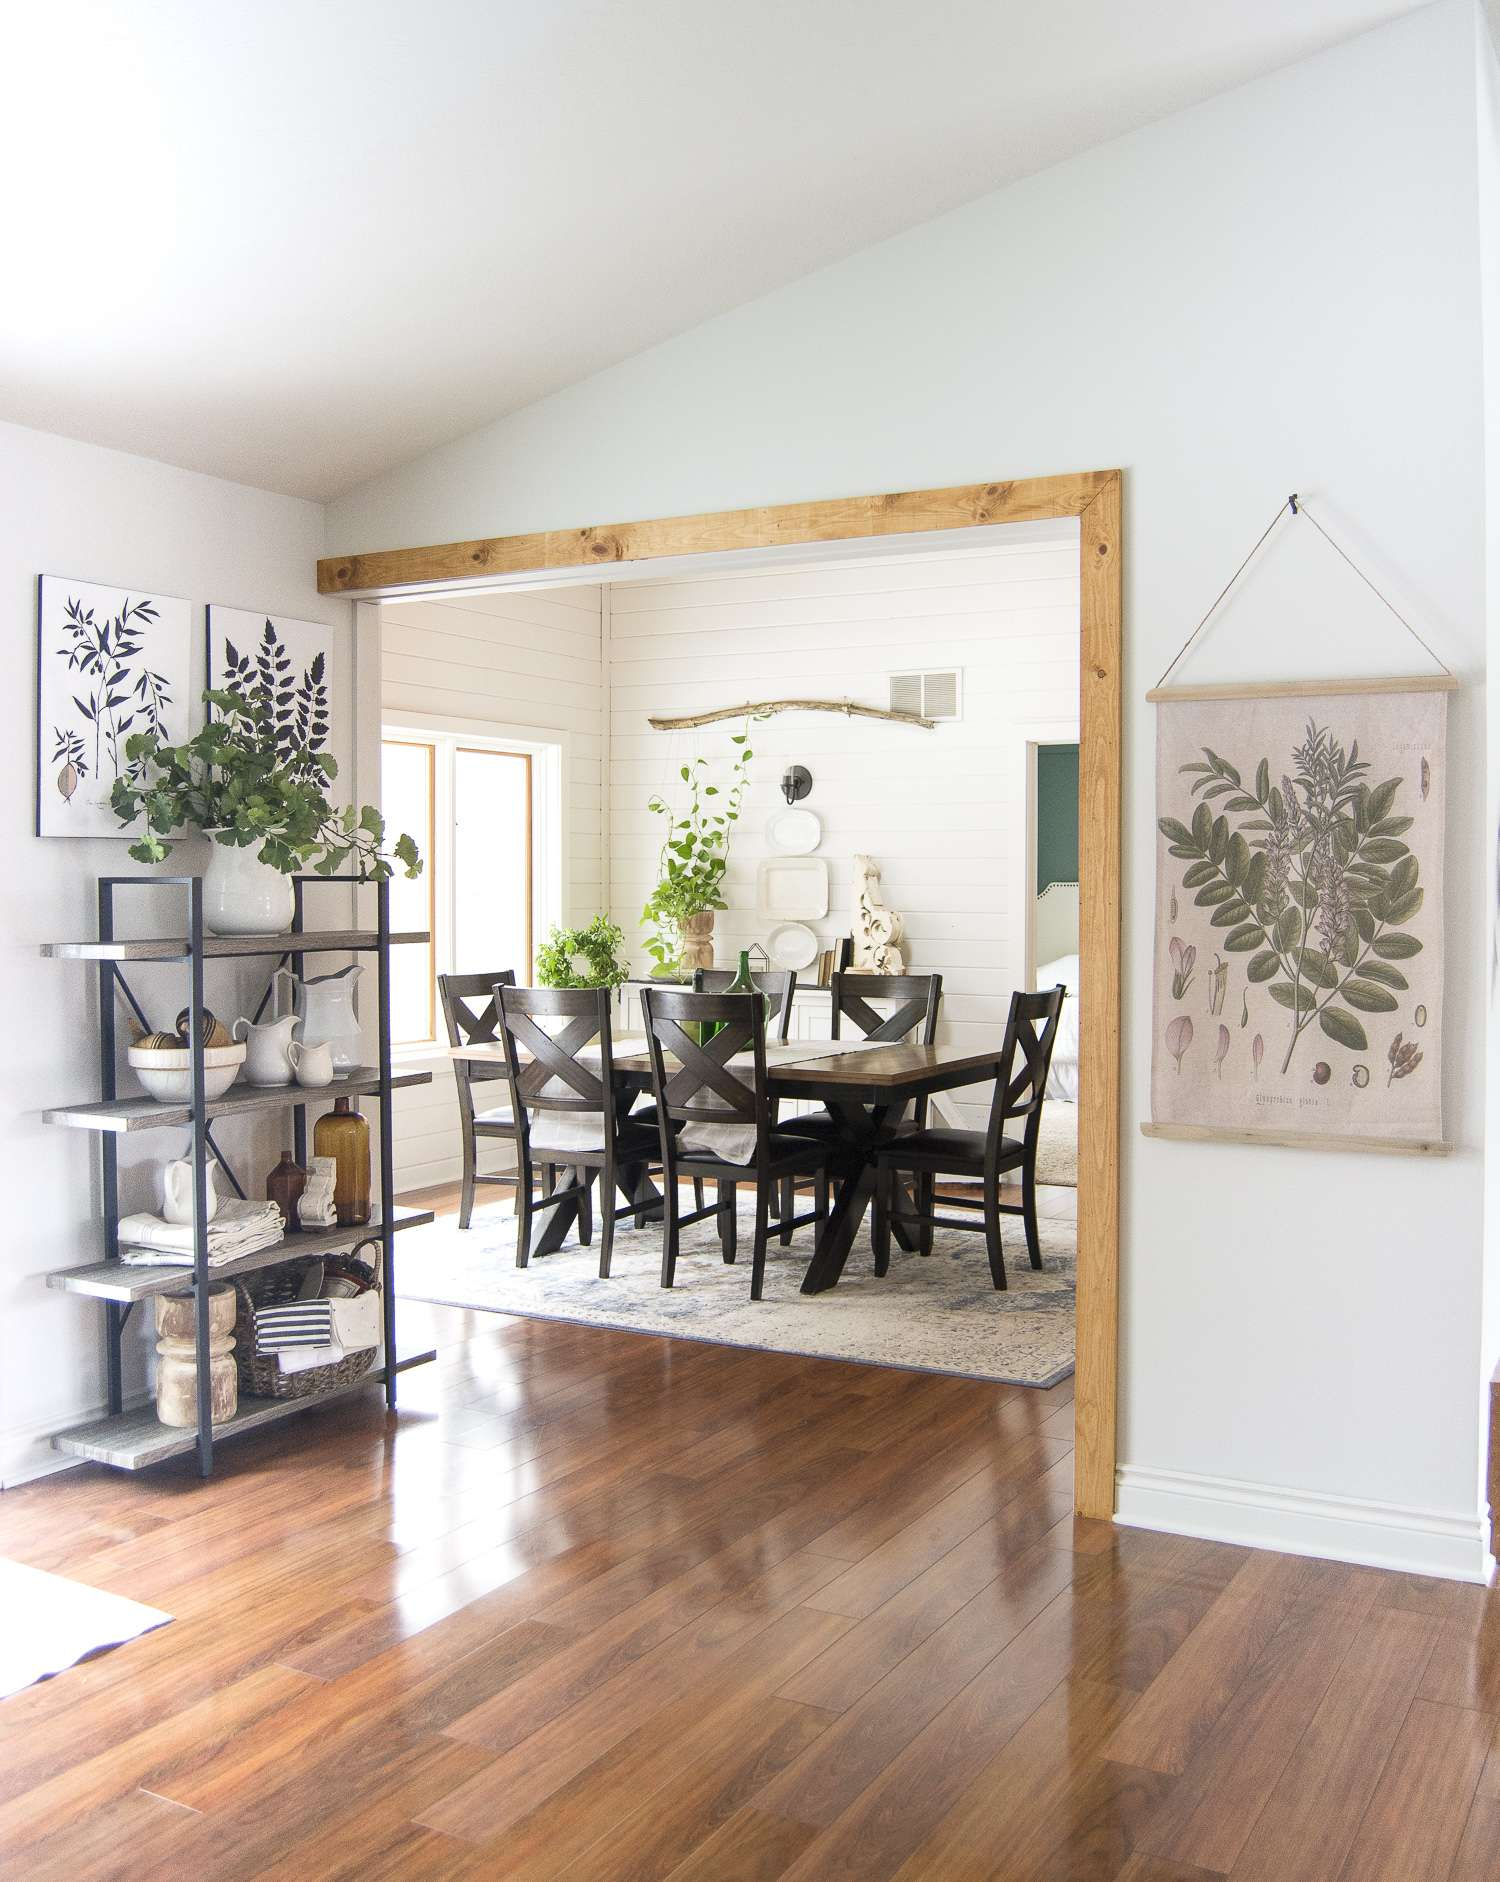 Are You Looking For Easy Ways To Transition Your Dining Room From Winter Into Spring